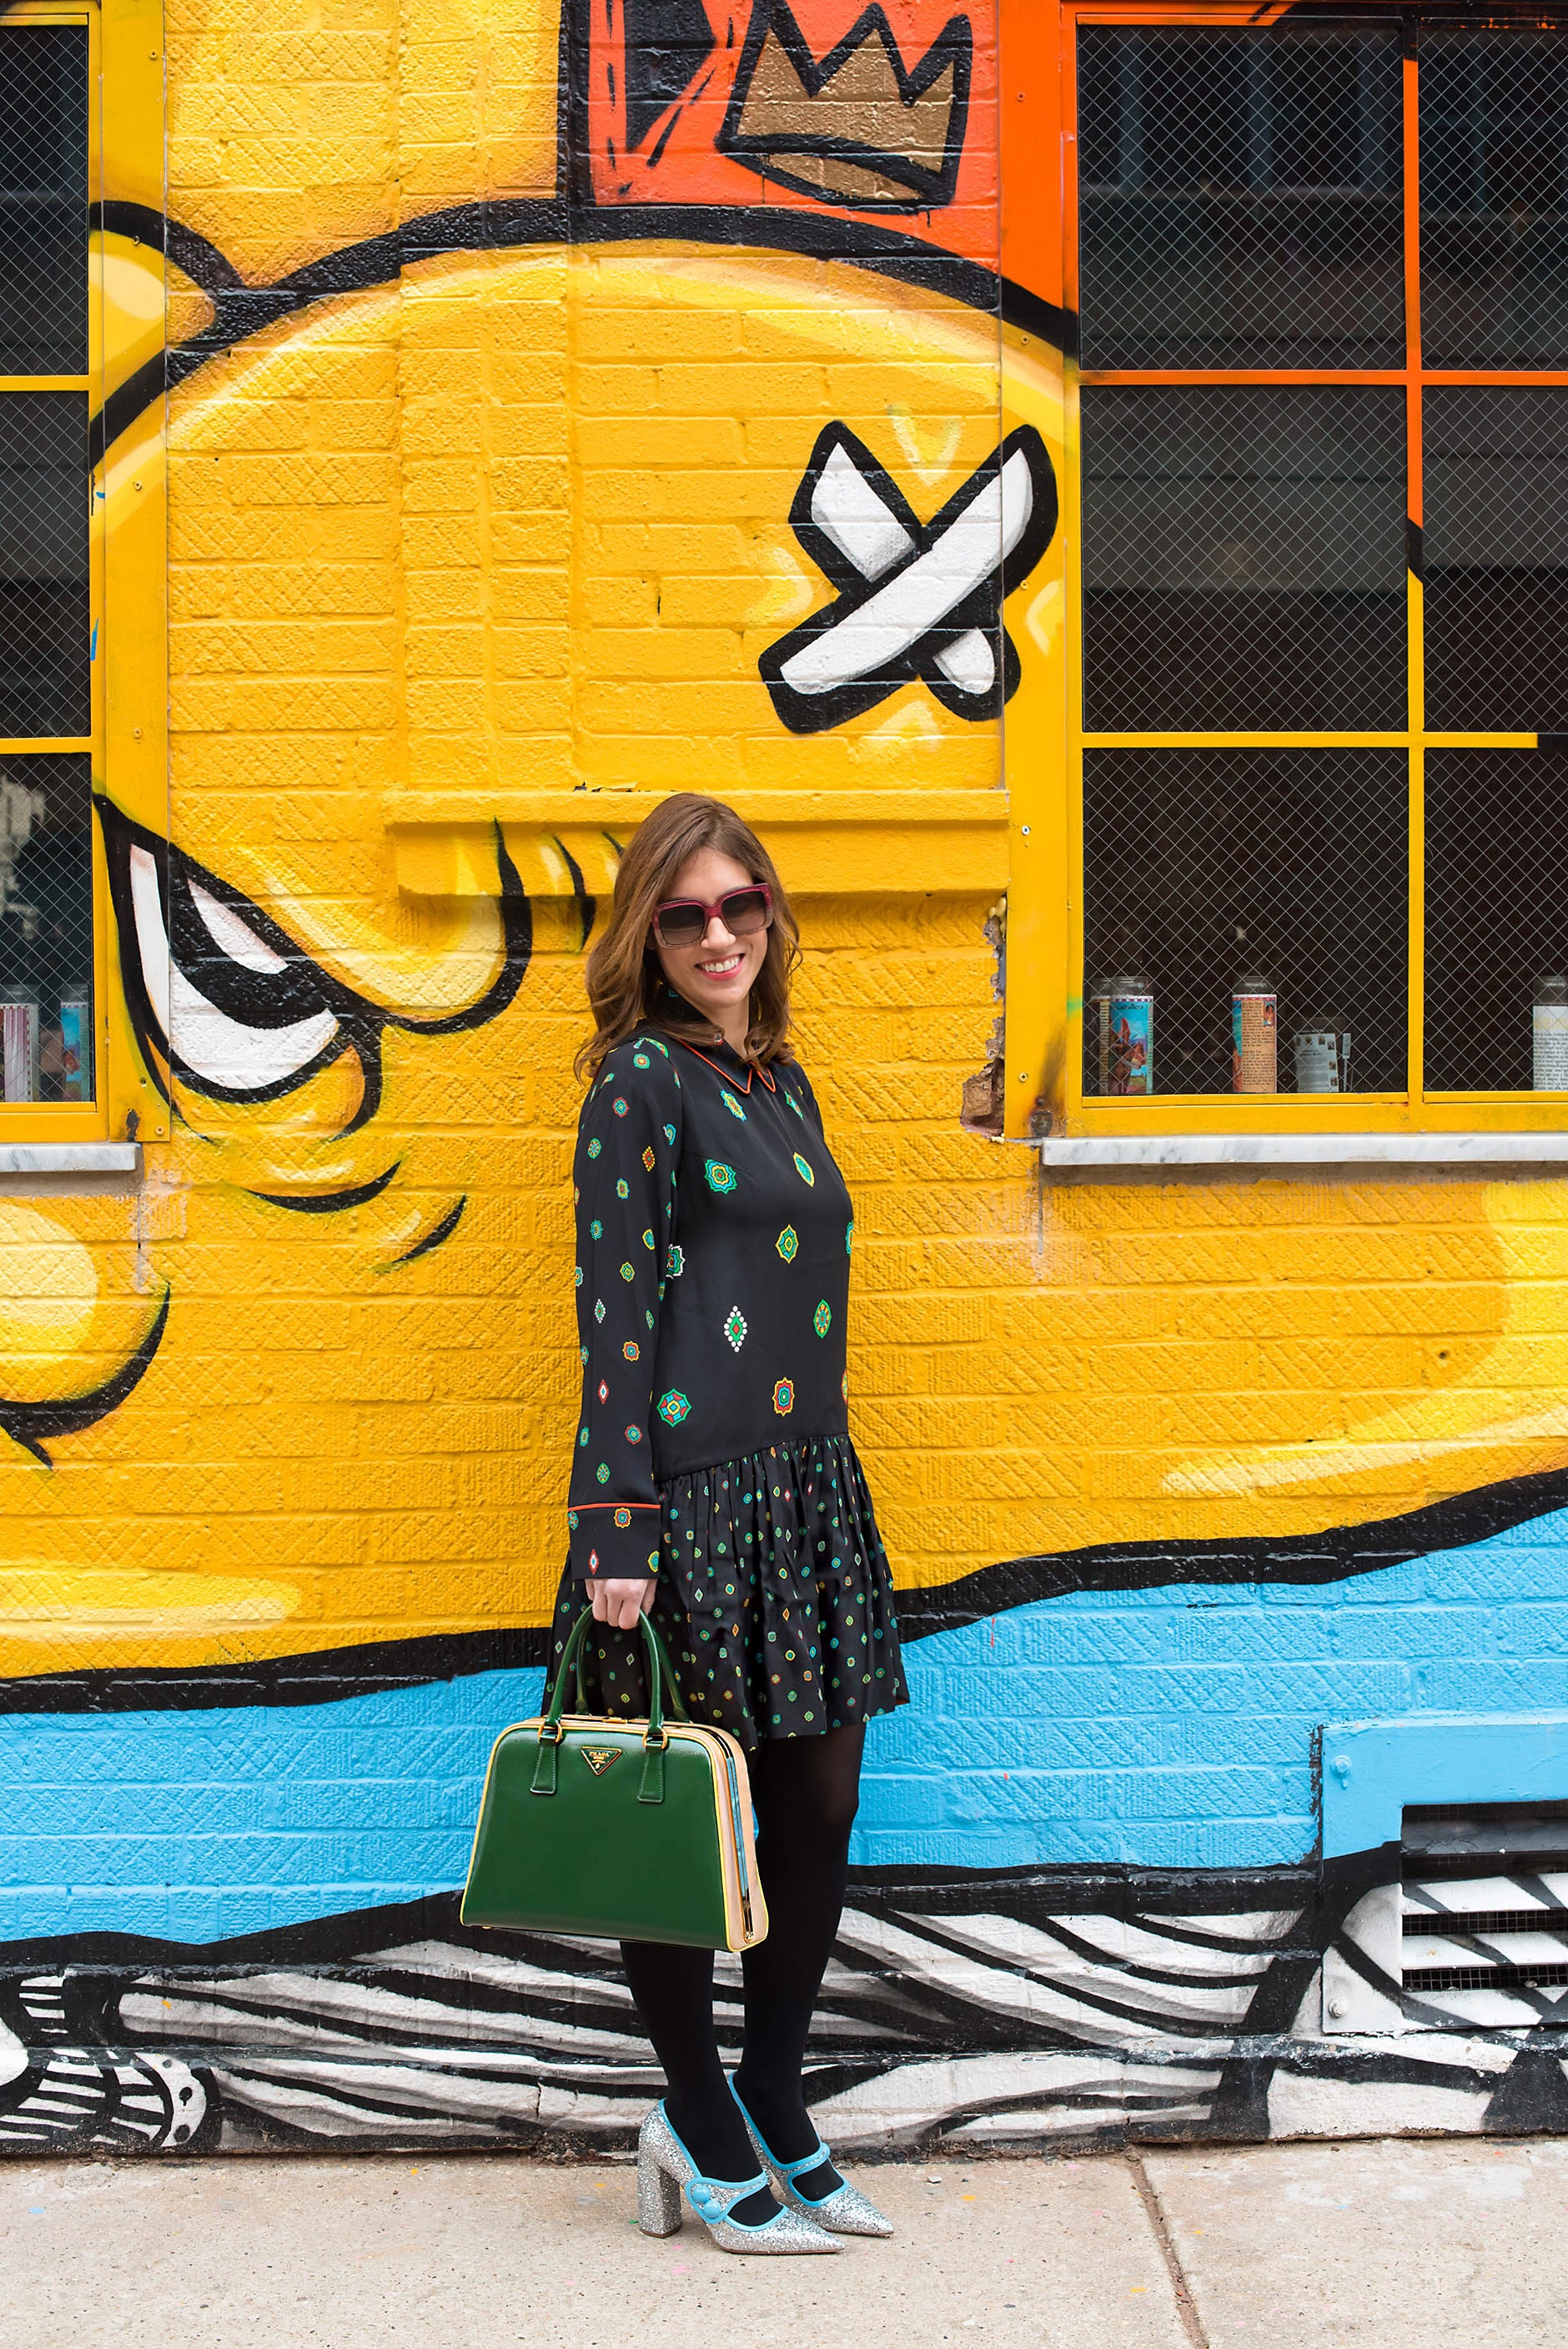 Anna Roufos Sosa of Noir Friday wearing Kenzo x HM.